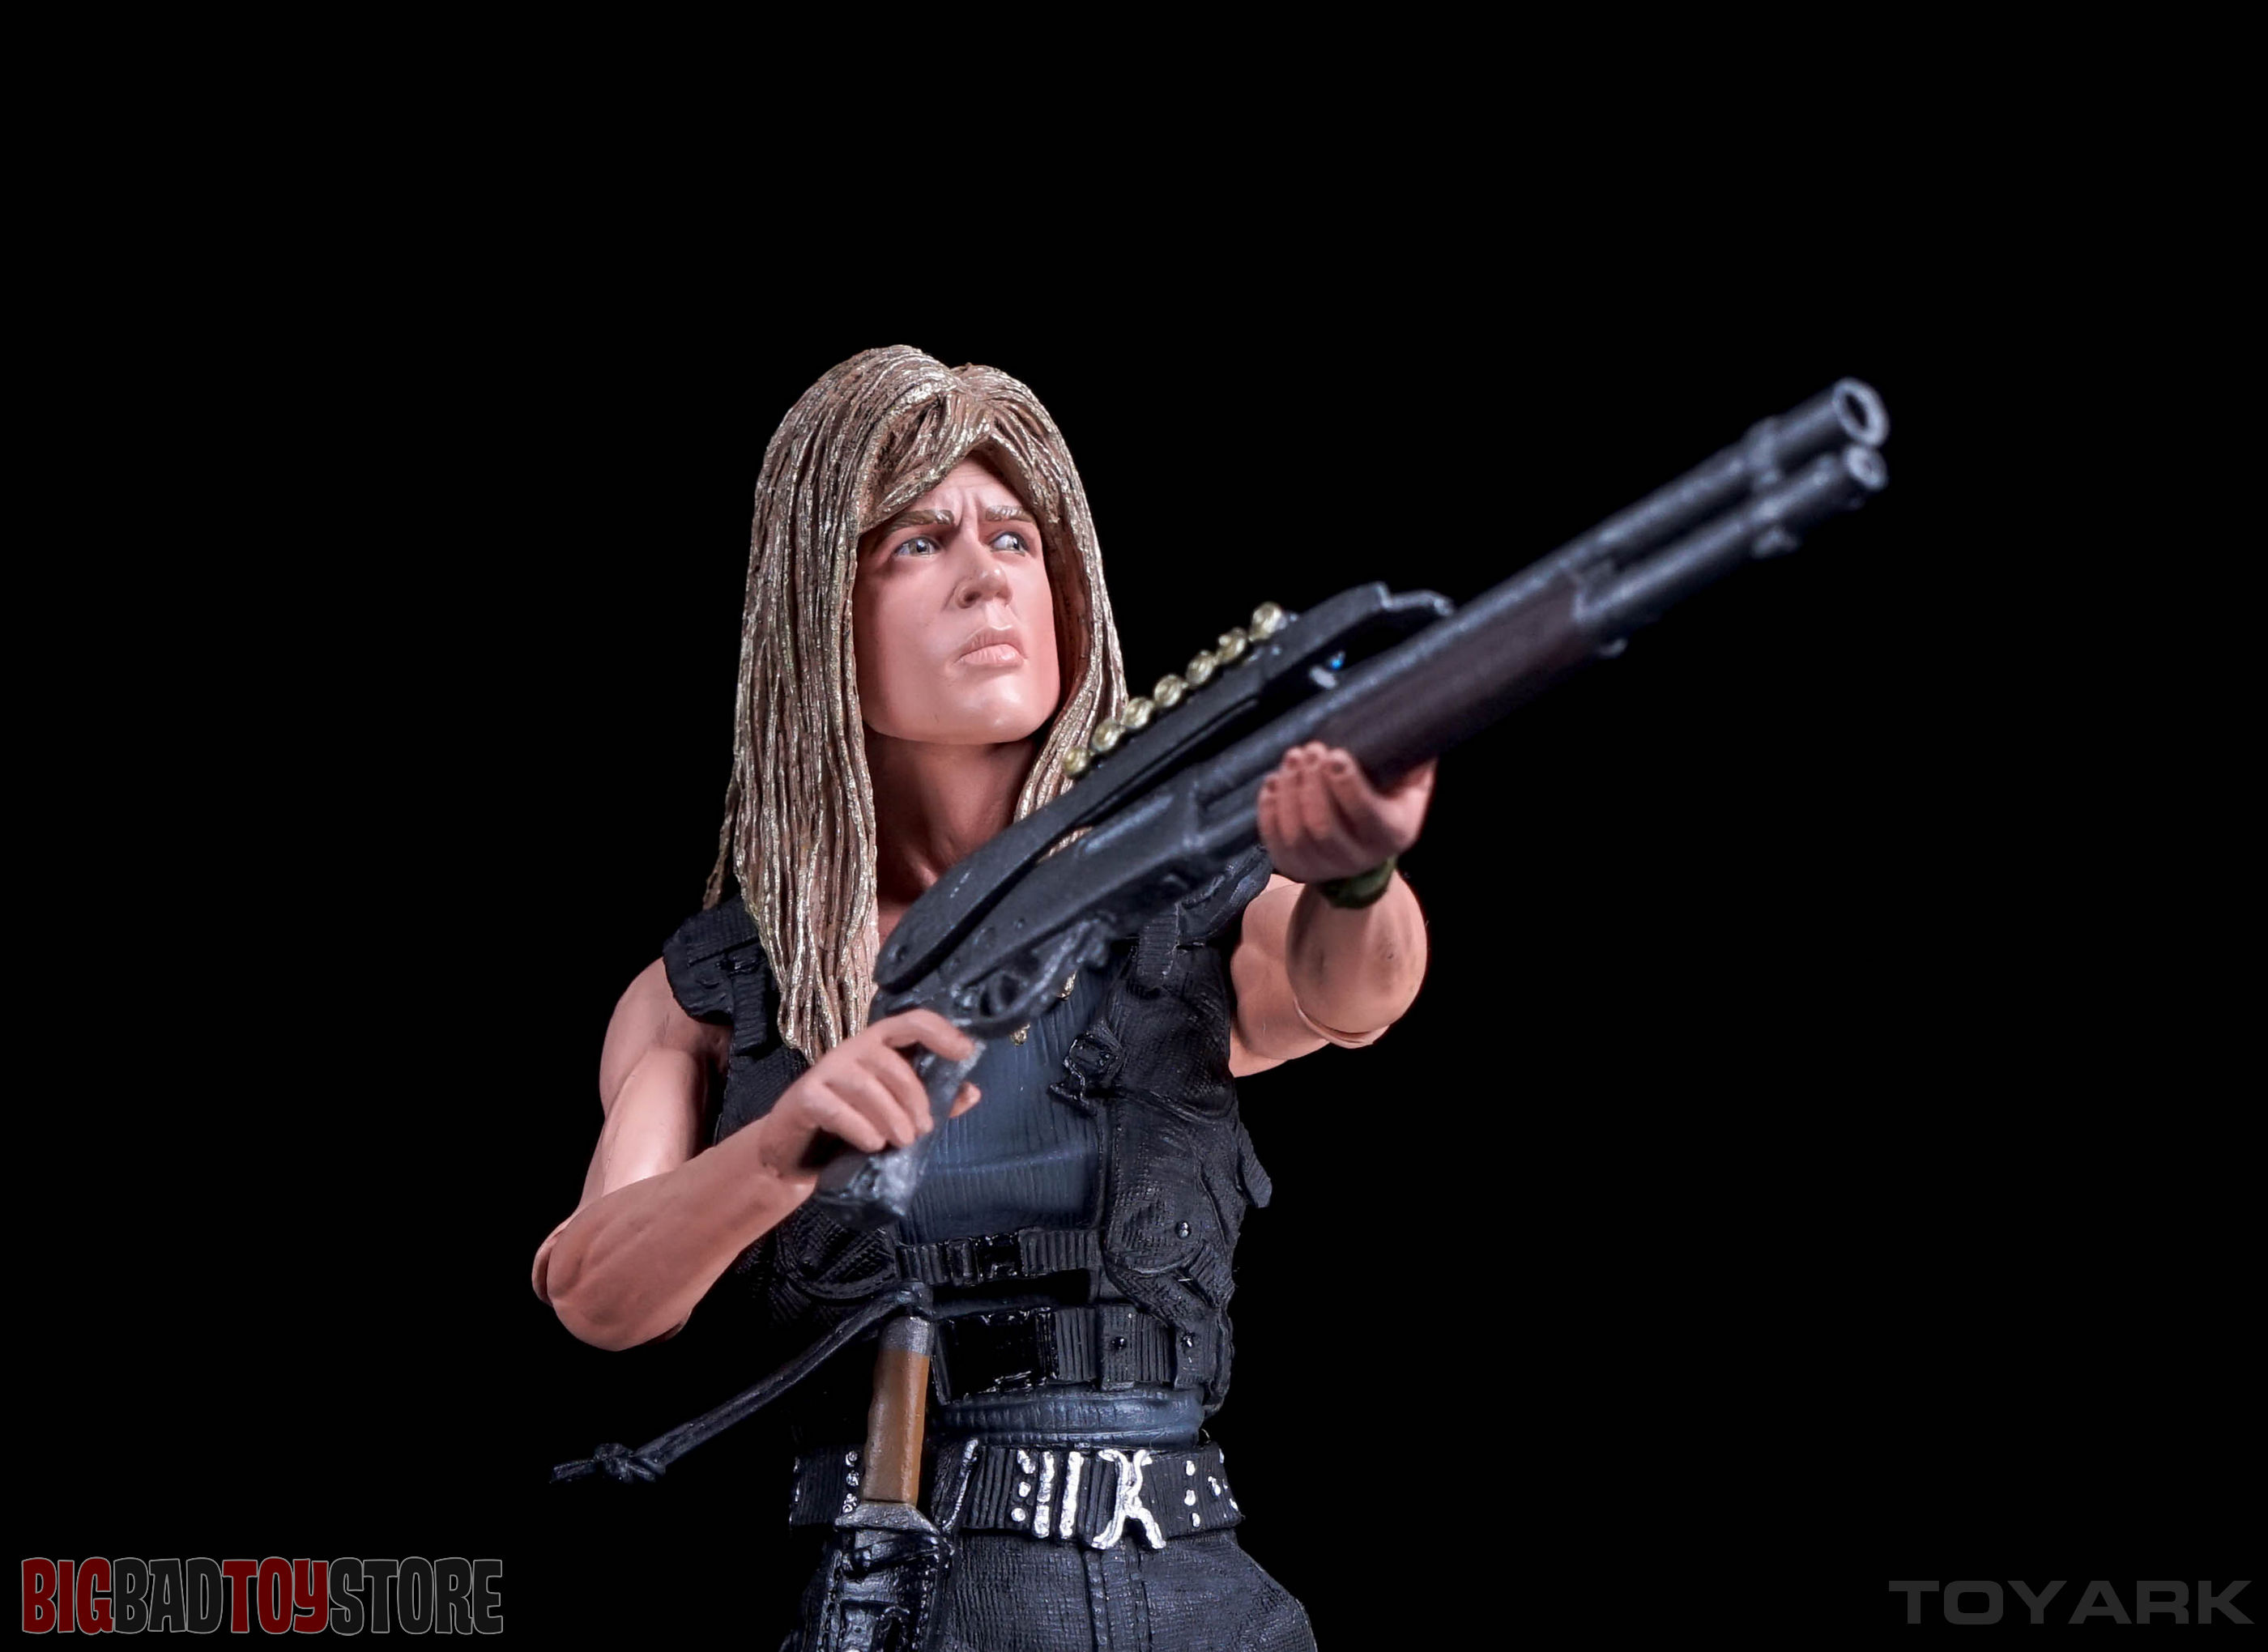 http://news.toyark.com/wp-content/uploads/sites/4/2016/01/NECA-Terminator-2-Sarah-Connor-040.jpg